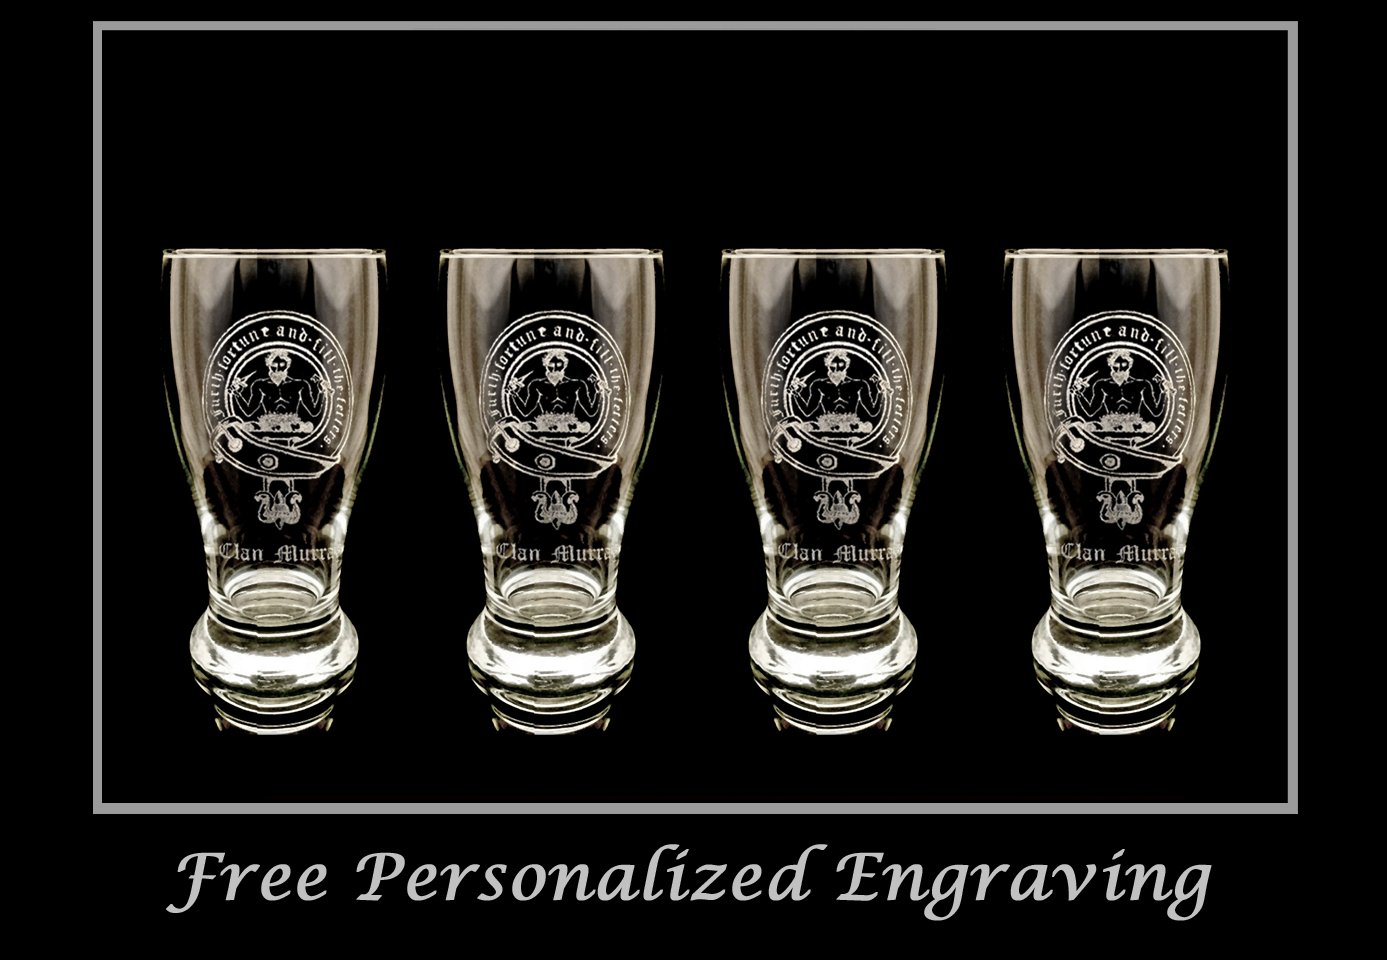 Clan Murray Scottish Crest Pint Glass Set of 4 - Free Personalized Engraving, Family Crest, Pub Glass, Beer Glass, Custom Beer Glass